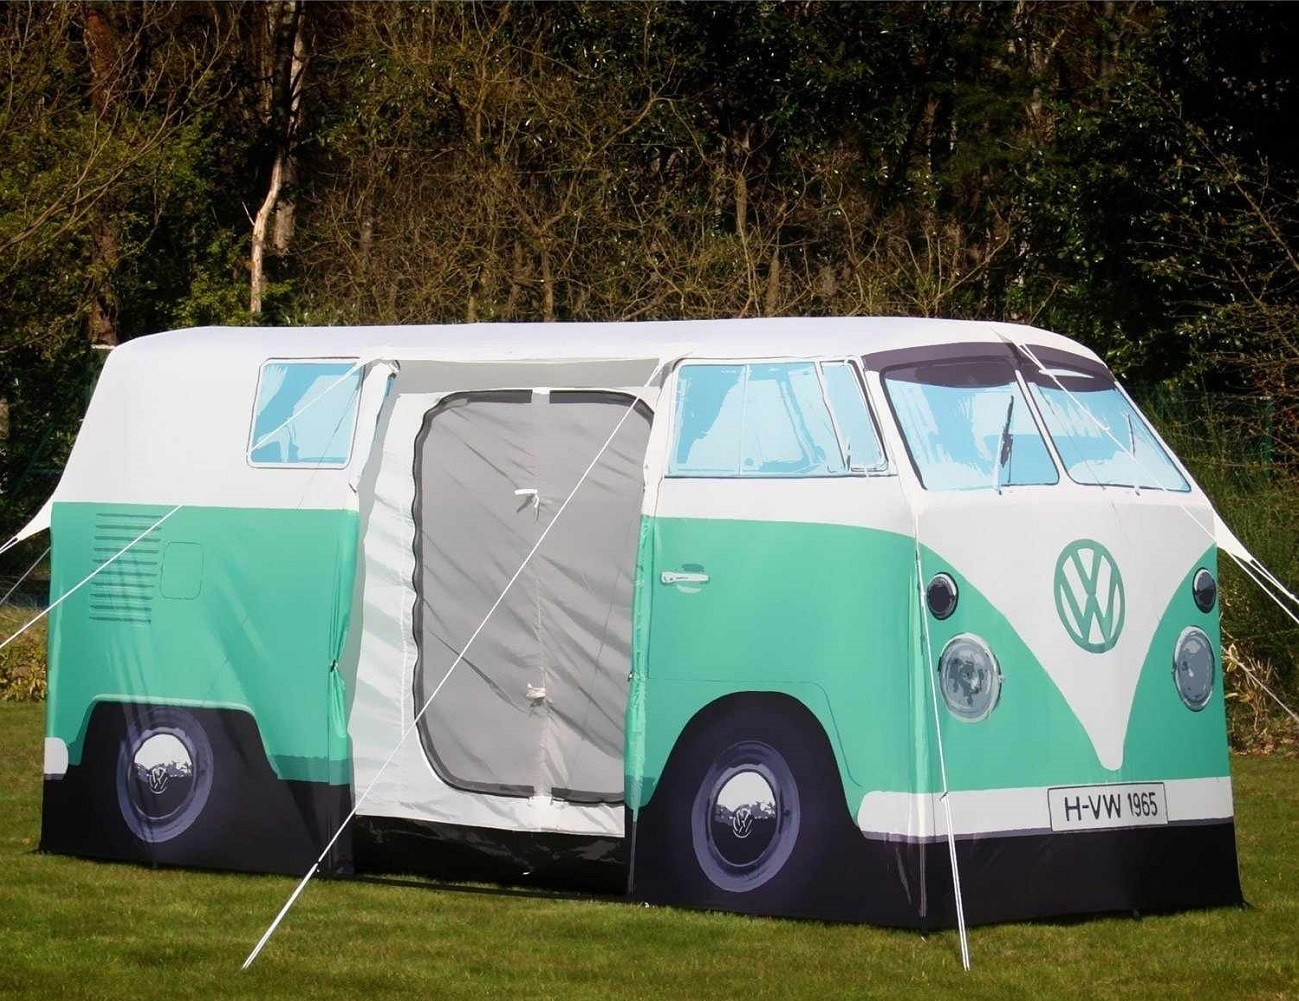 Vw Campervan Accessories >> VW Camper Van Tent » Gadget Flow